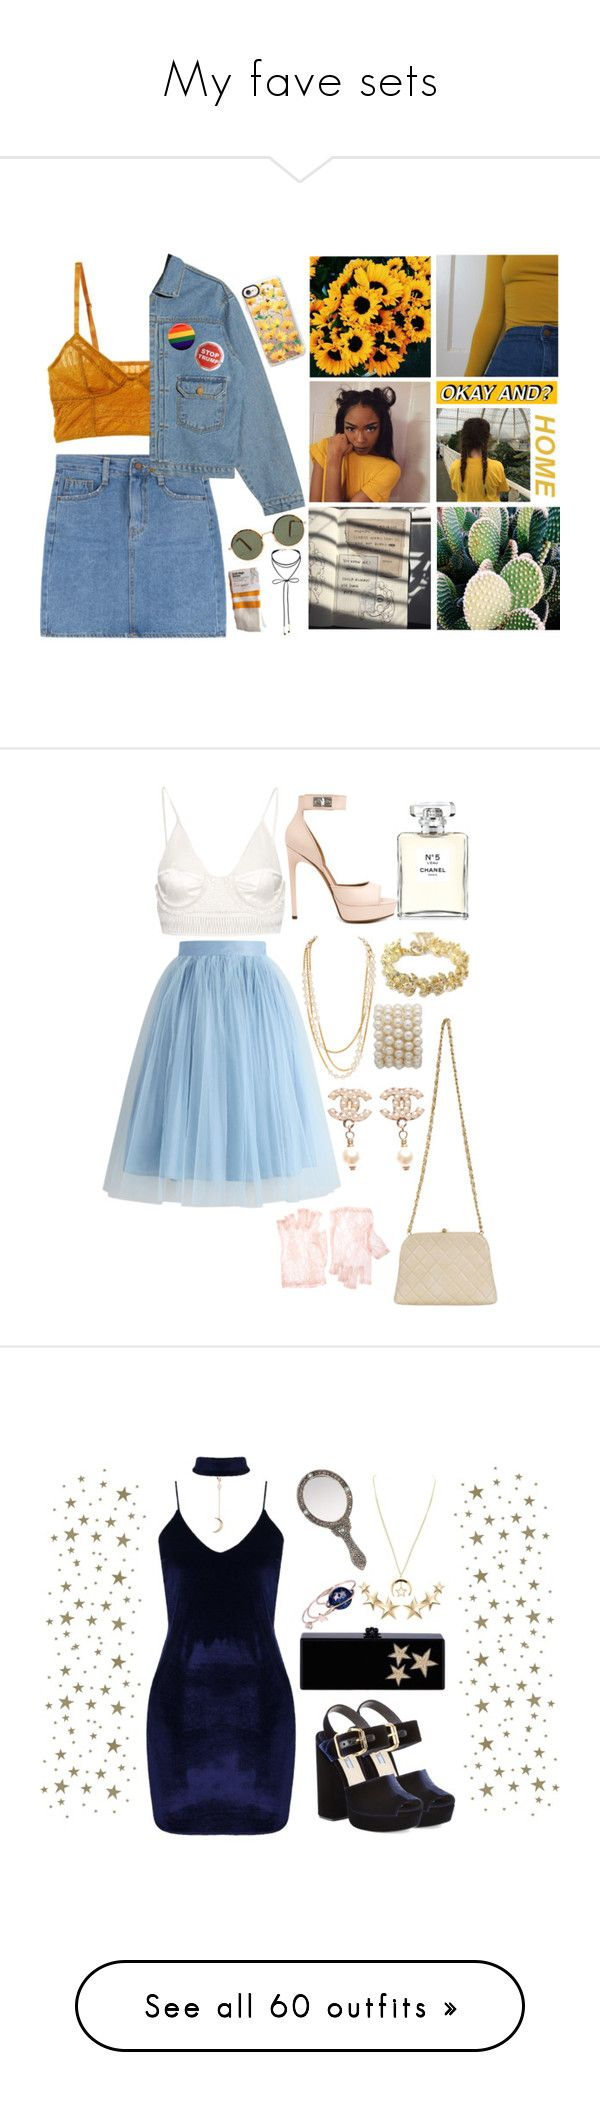 """""""My fave sets"""" by queen-of-disasterxxi ❤ liked on Polyvore featuring Intimately Free People, GET LOST, Trump Home, Miss Selfridge, Casetify, Chicwish, Balenciaga, Chanel, Givenchy and ASOS"""